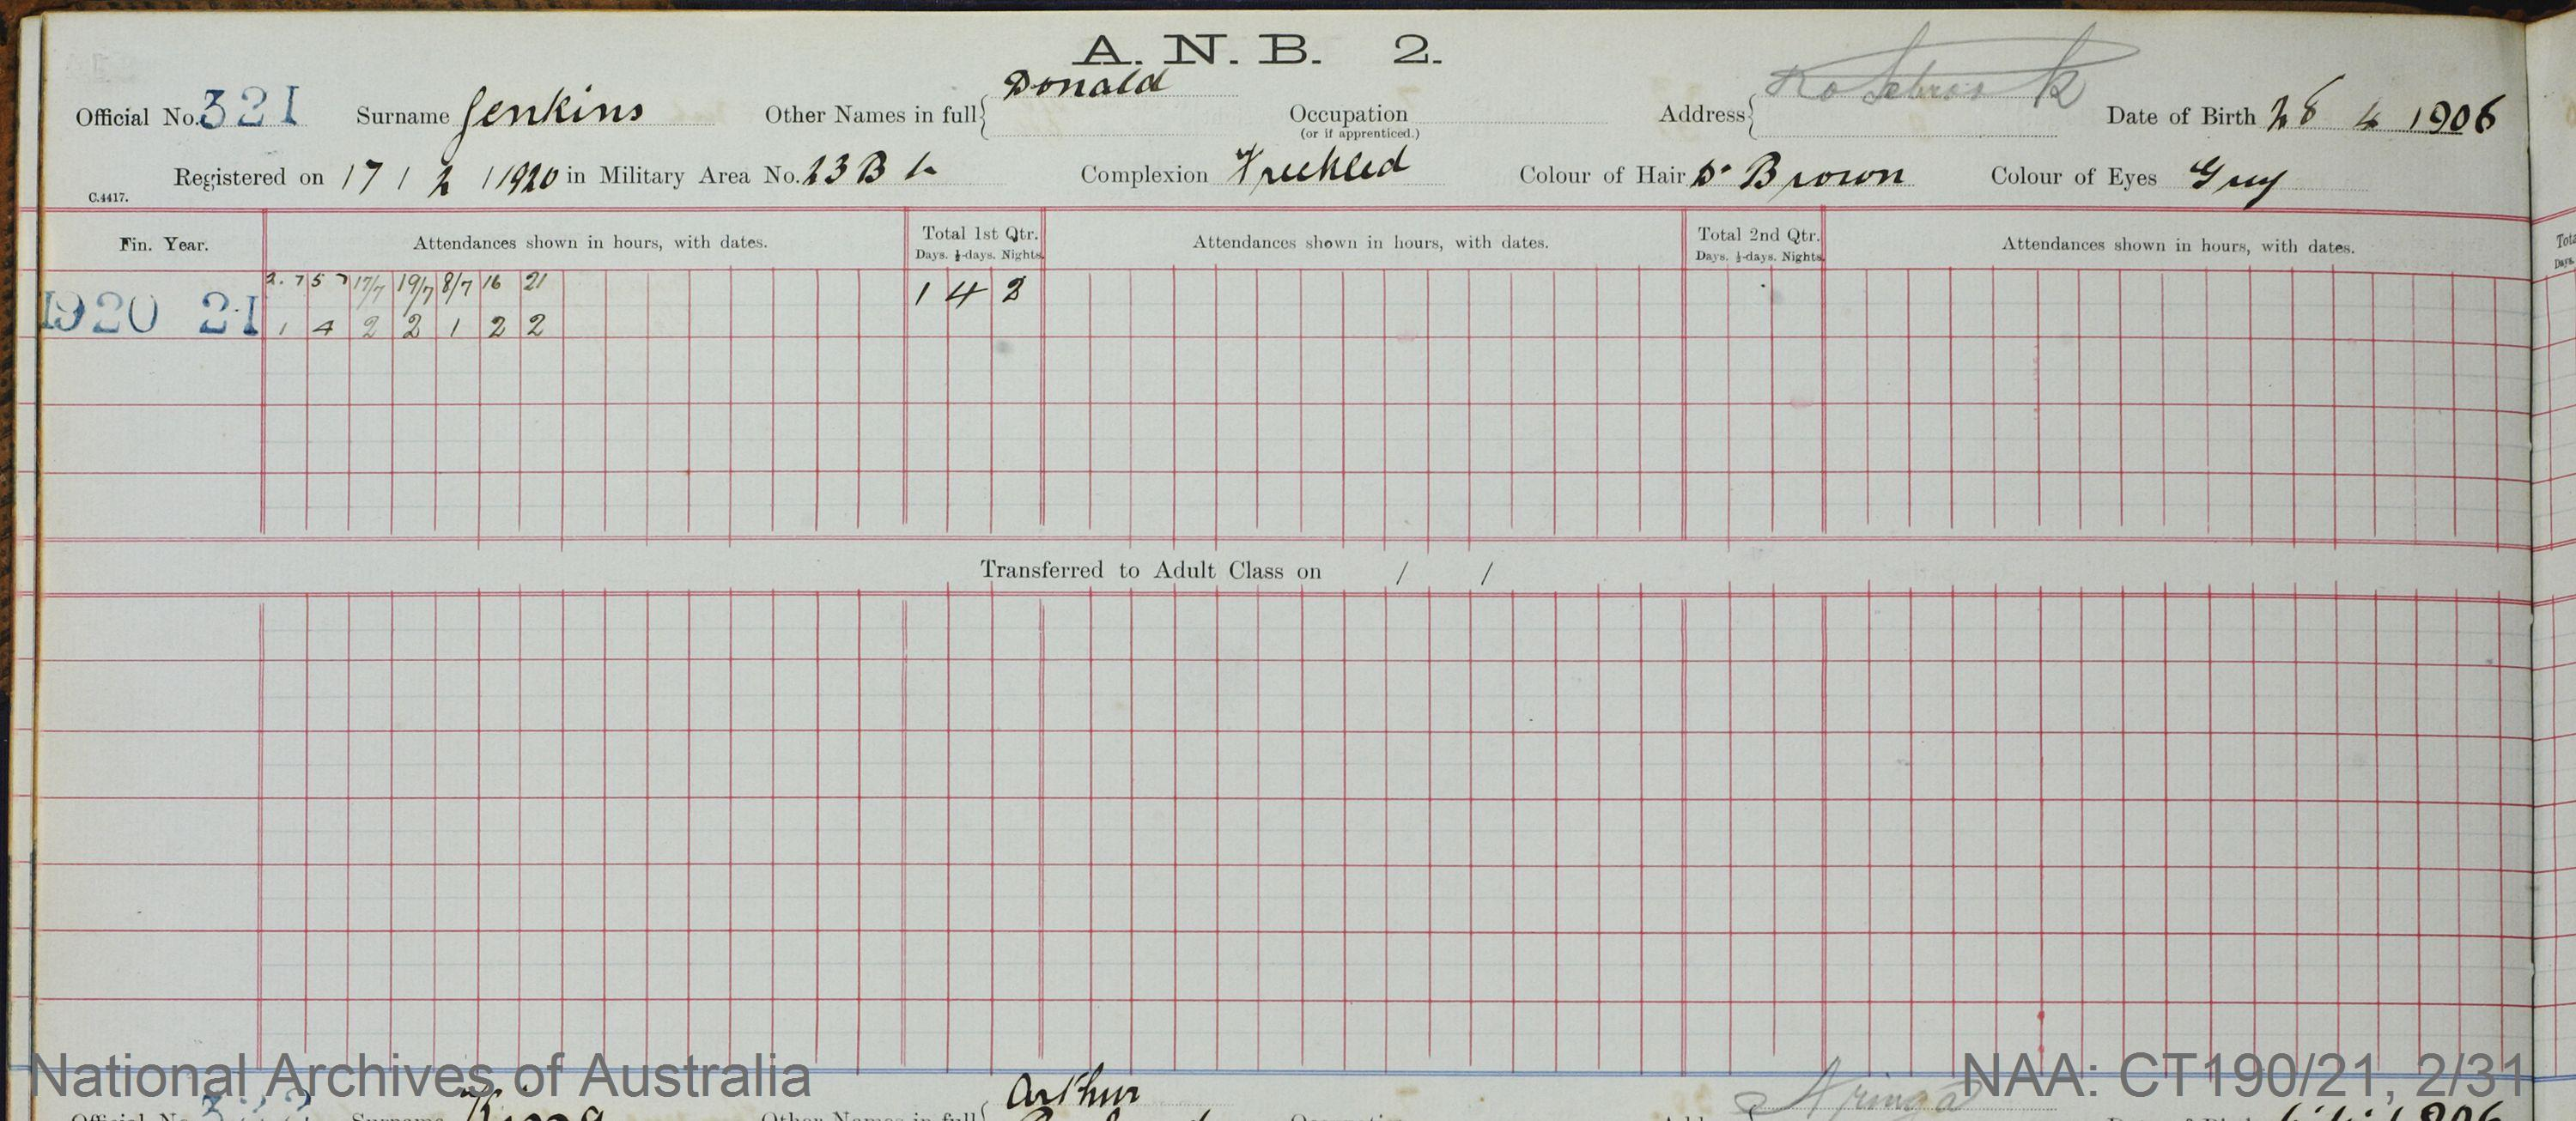 SURNAME - JENKINS;  GIVEN NAME(S) - Donald;  OFFICIAL NUMBER - 321;  DATE OF BIRTH - 28 April 1906;  PLACE OF BIRTH - [Unknown];  NEXT OF KIN - [Unknown] ;  SERVICE/STATION - Port Fairy;  REGISTRATION DATE - 17 February 1920